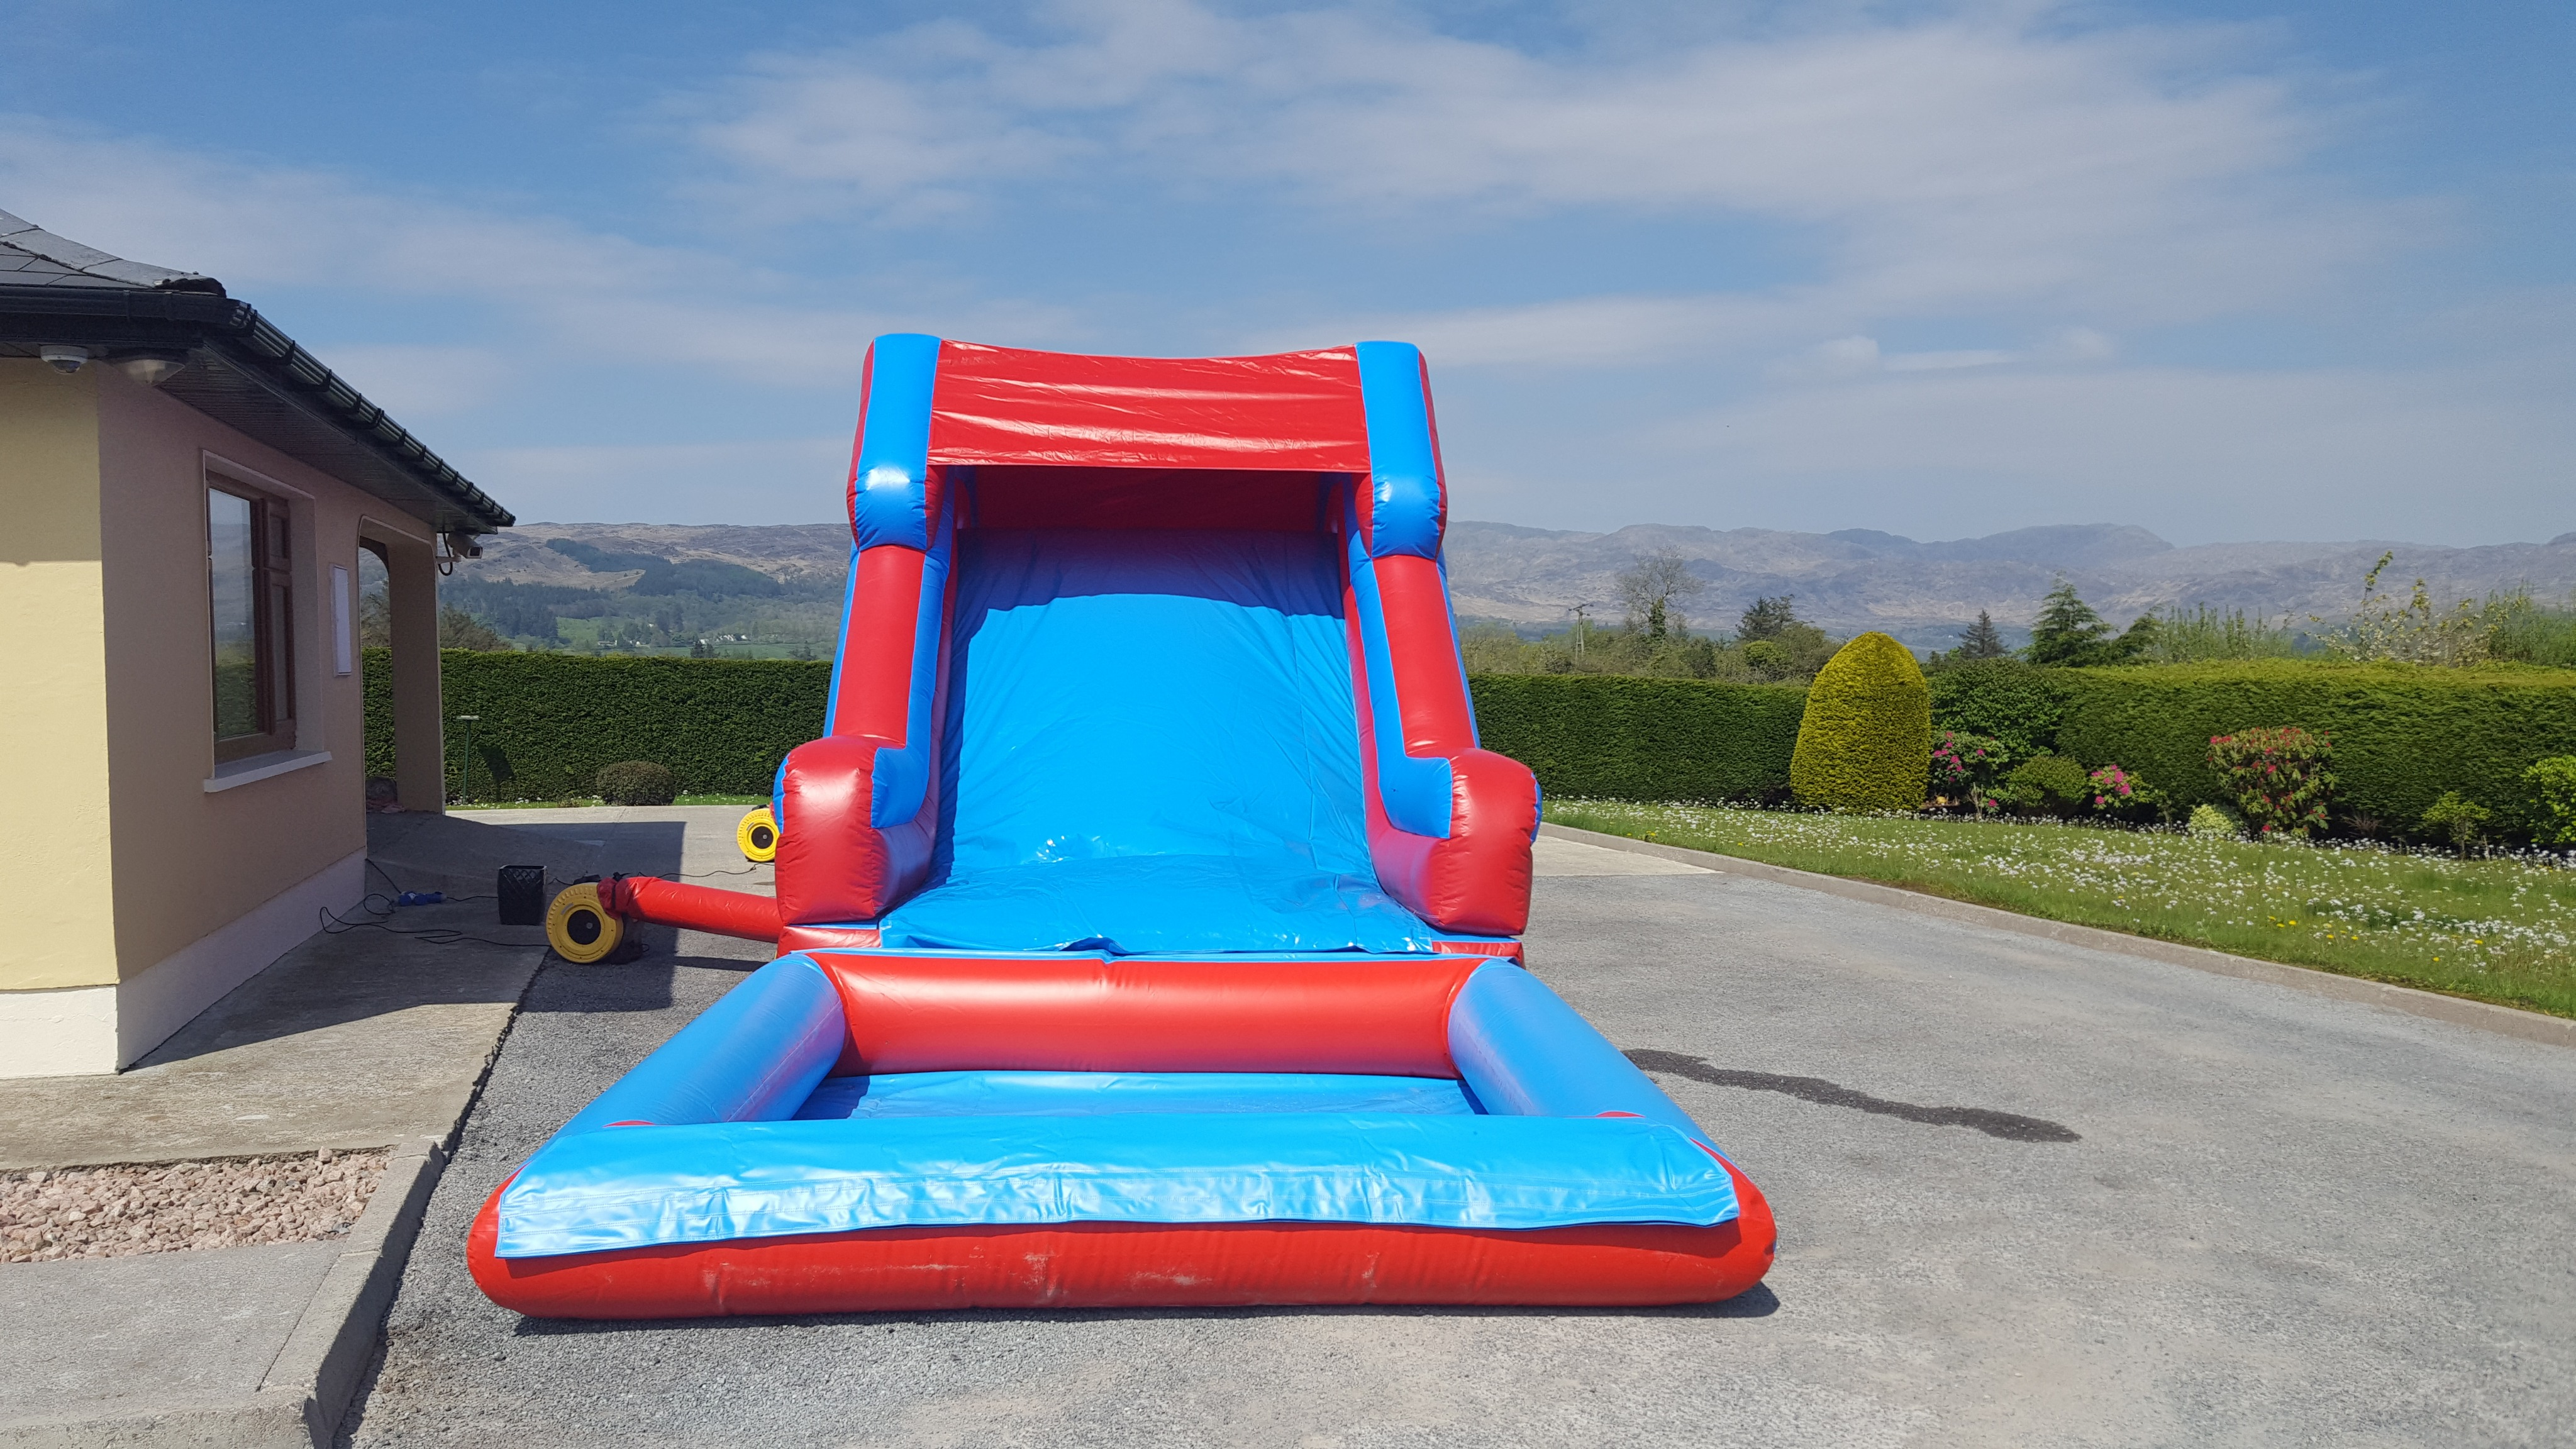 Sligo_Bouncy_Castle_Hire 50ft & Slide